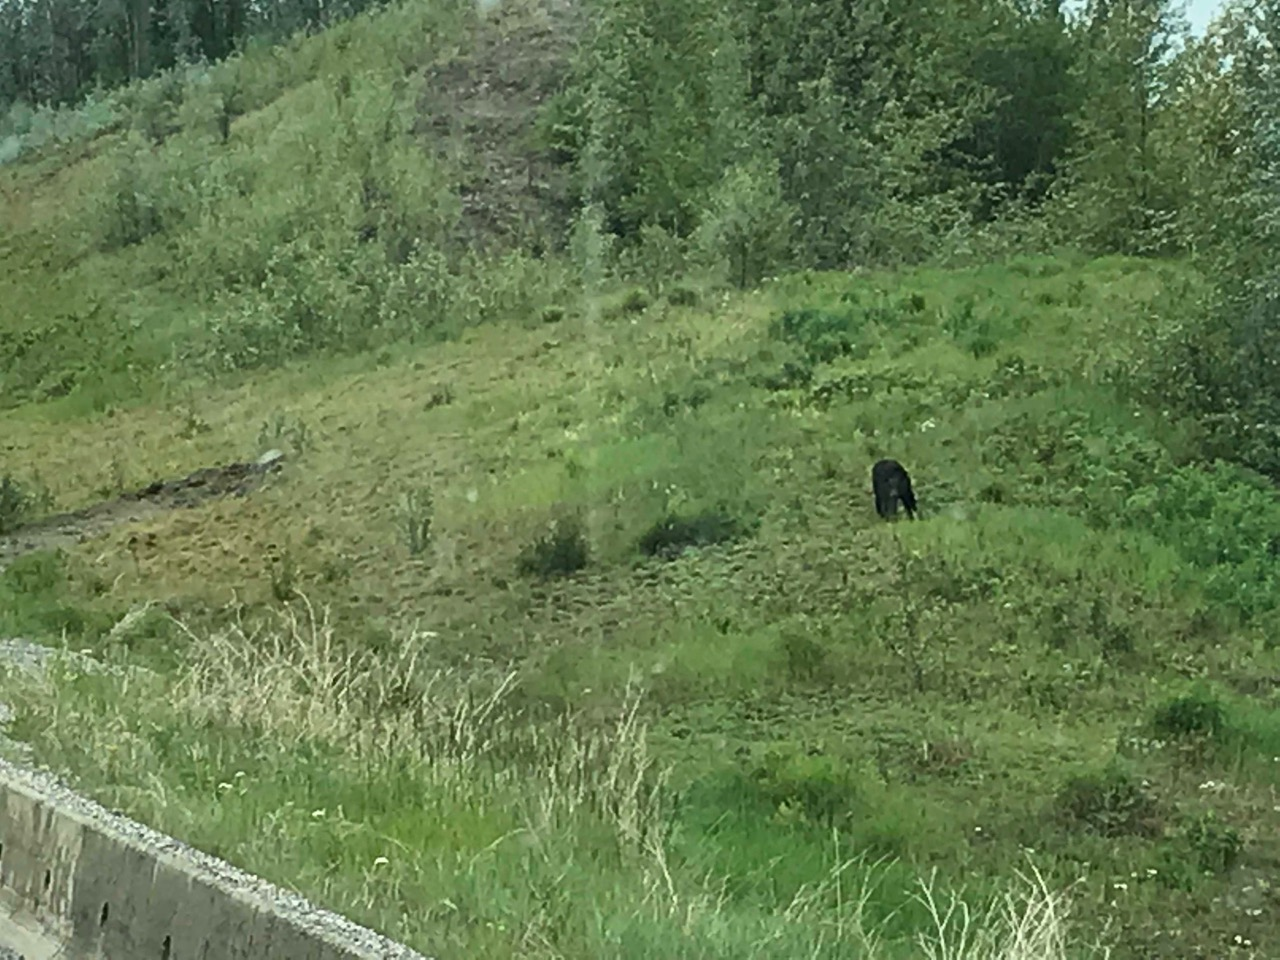 One of our only photos of a bear saw from the road. This one ran away when we pulled up.